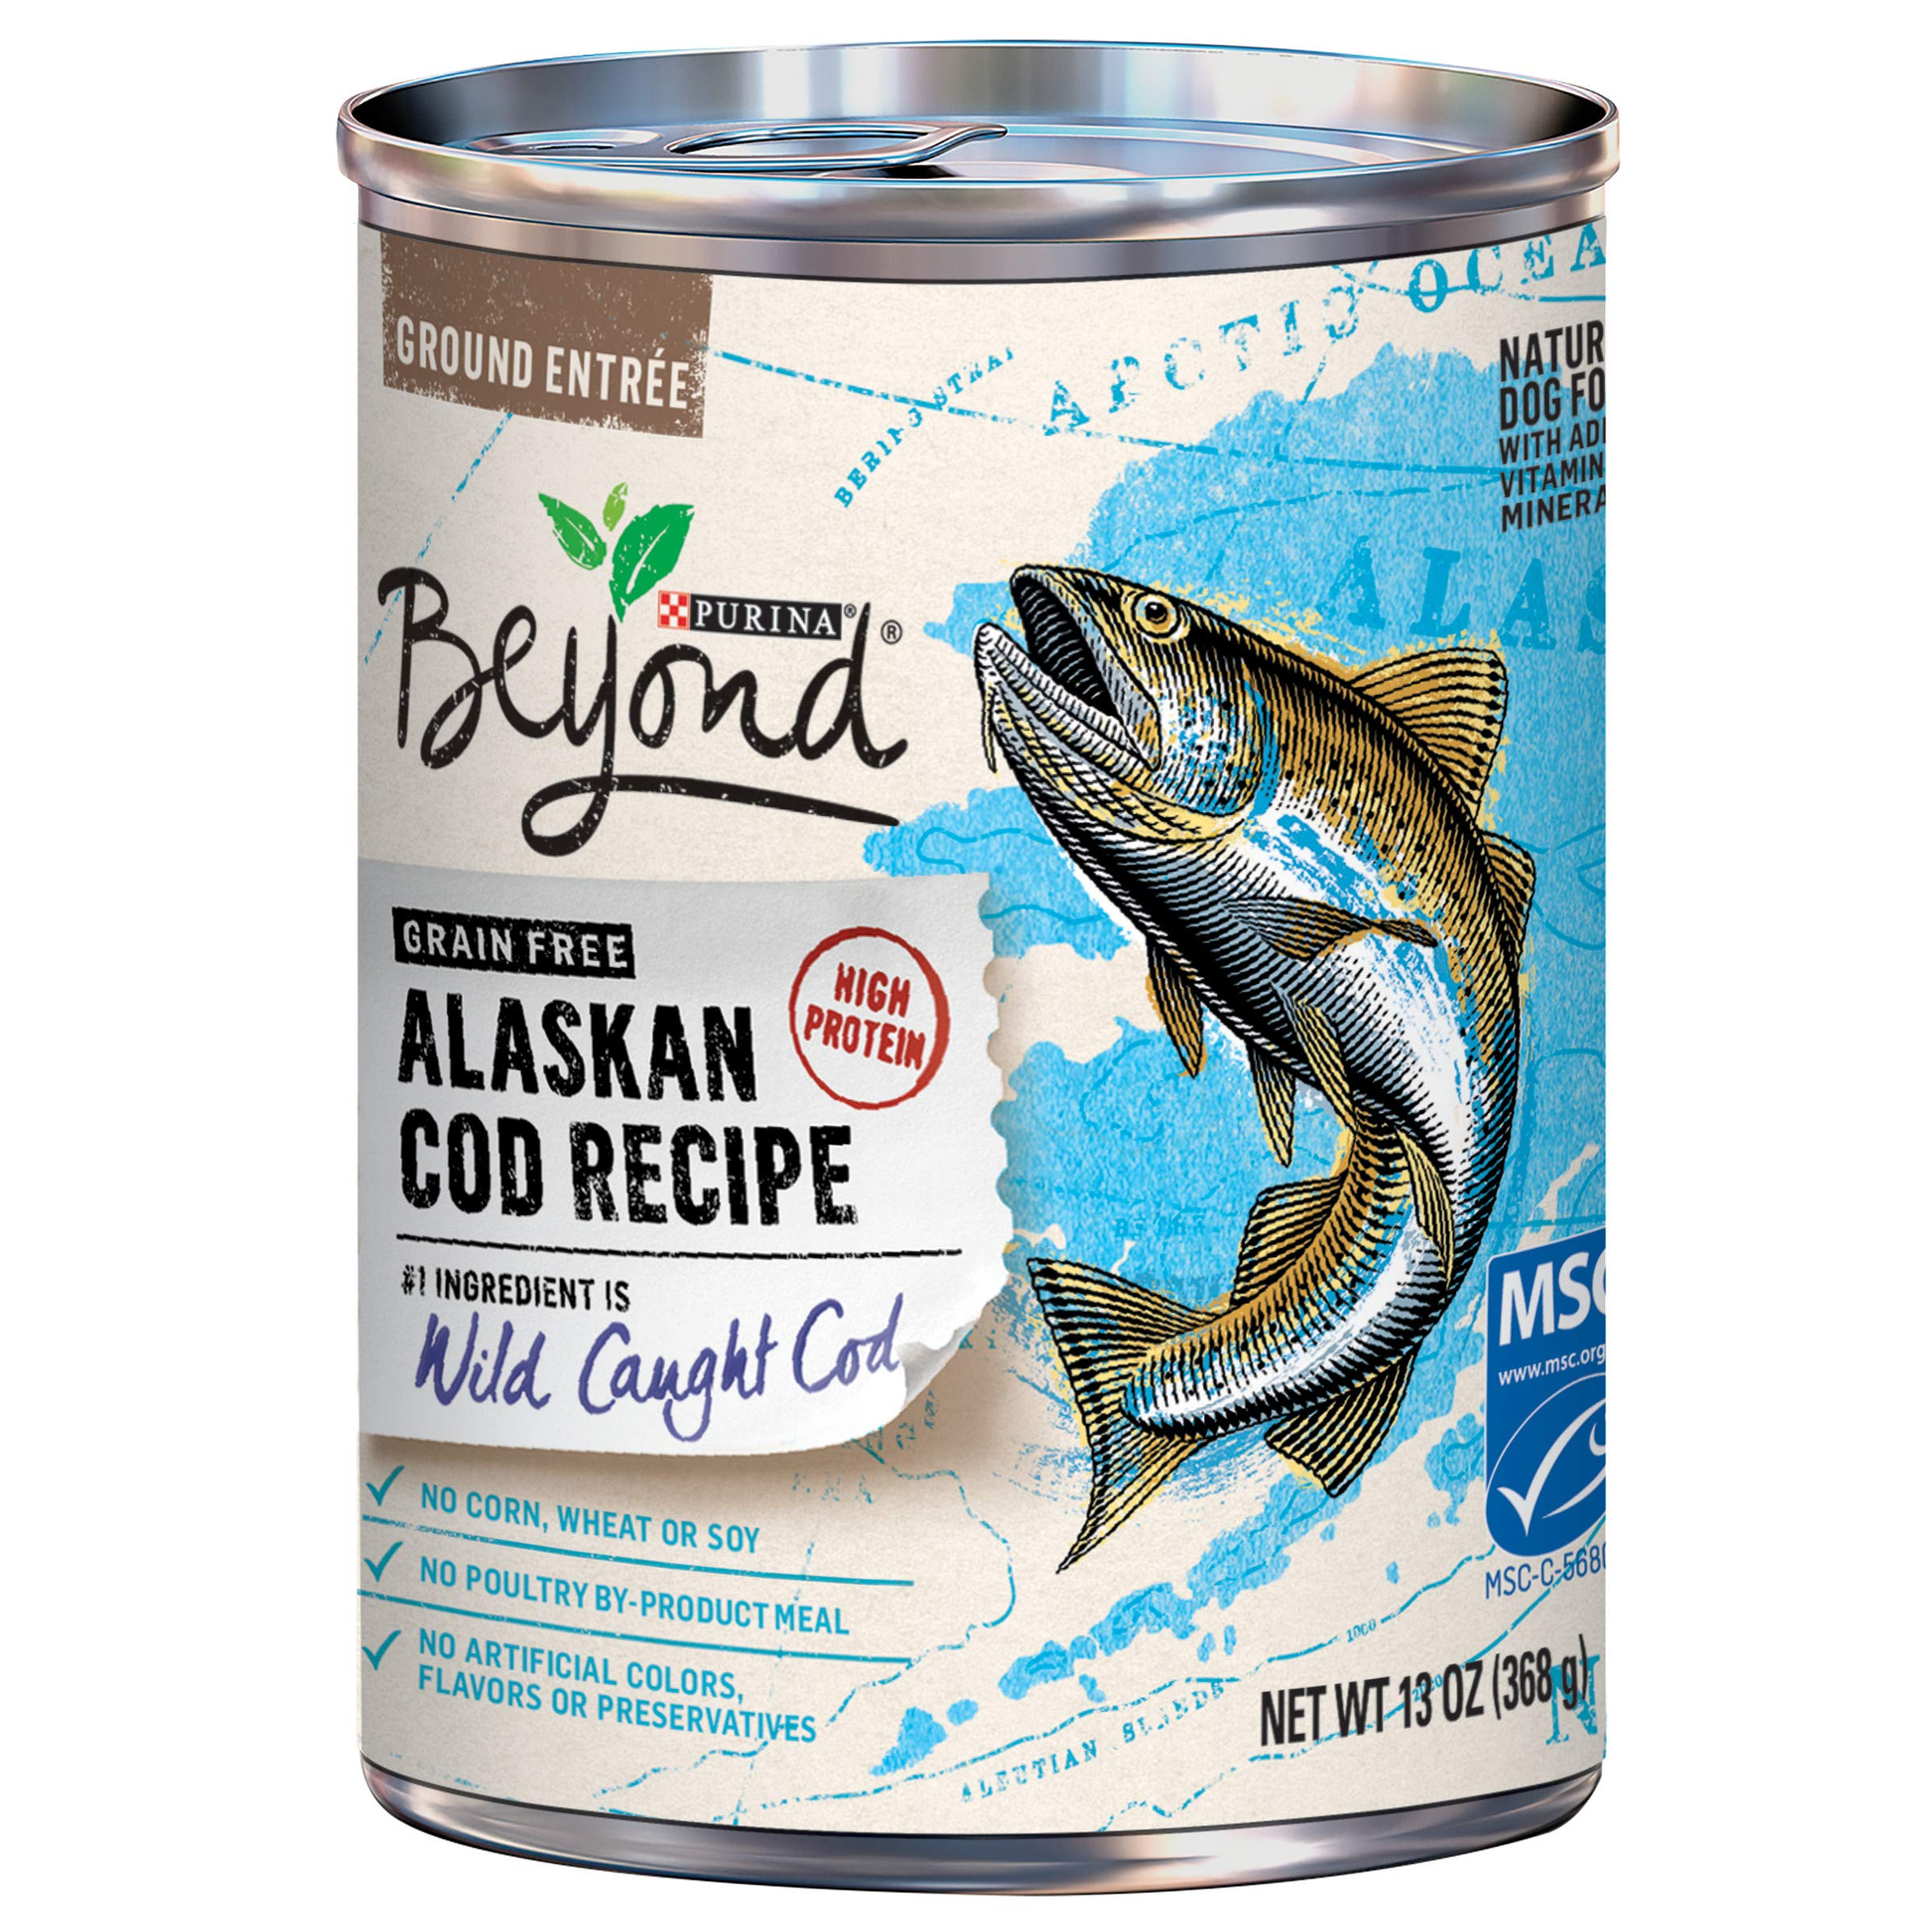 Purina Beyond Grain Free, Natural, High Protein Wet Dog Food, Alaskan Cod Recipe - (12) 13 oz. Cans by Purina Beyond